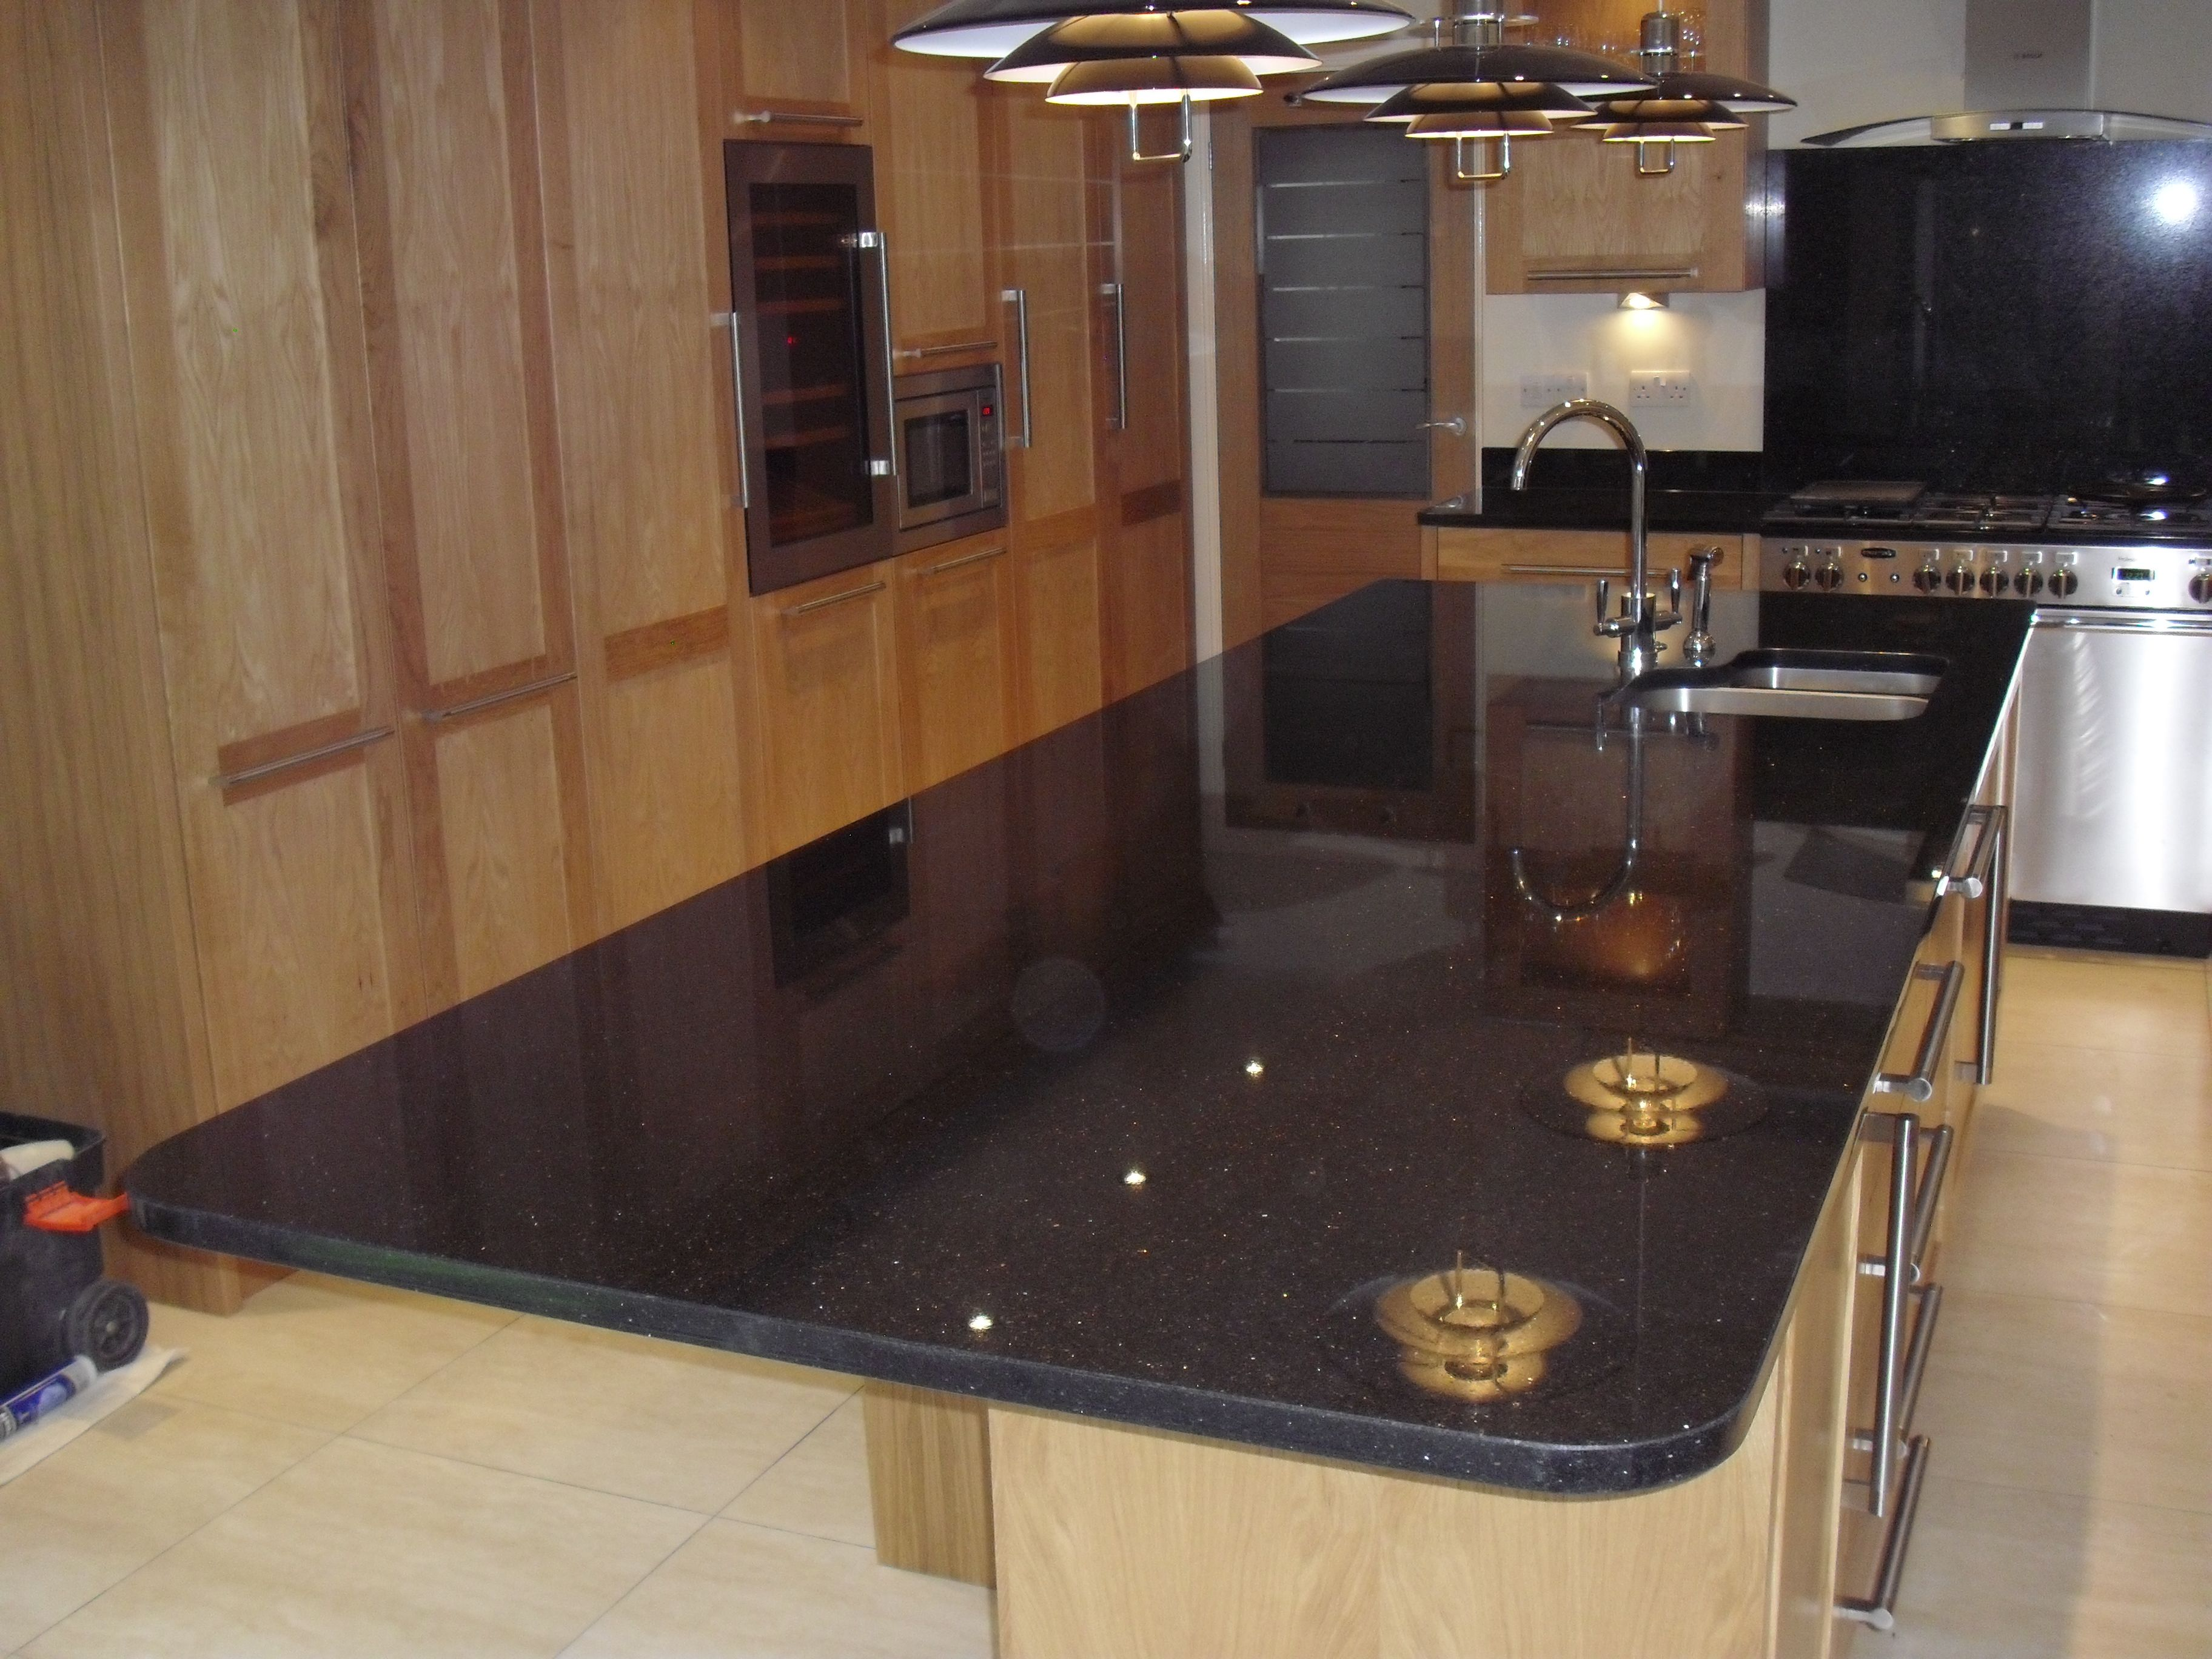 Stargalaxy Granite Huge Island In Length With Polished Sink Cut Out Granite Quartz